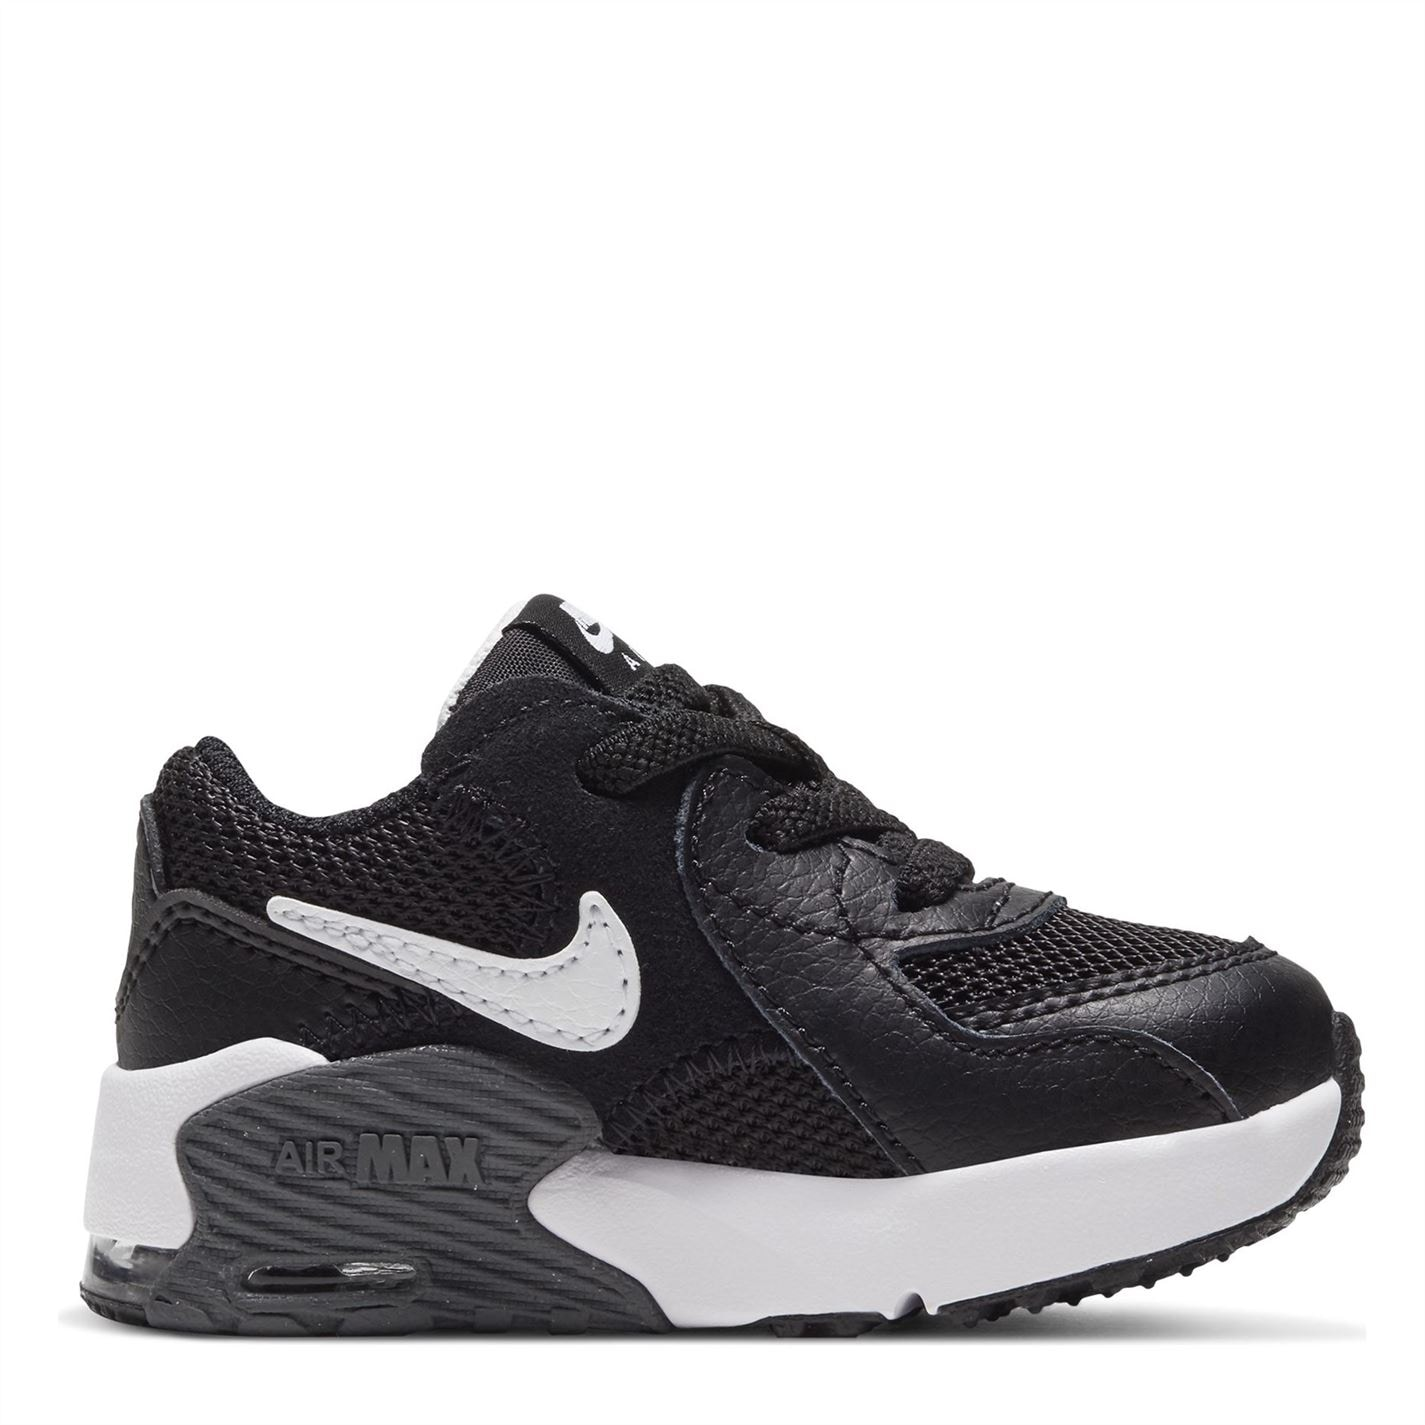 Nike Air Max Excee Trainers Infant Boys BLACK/WHITE-DARK GREY